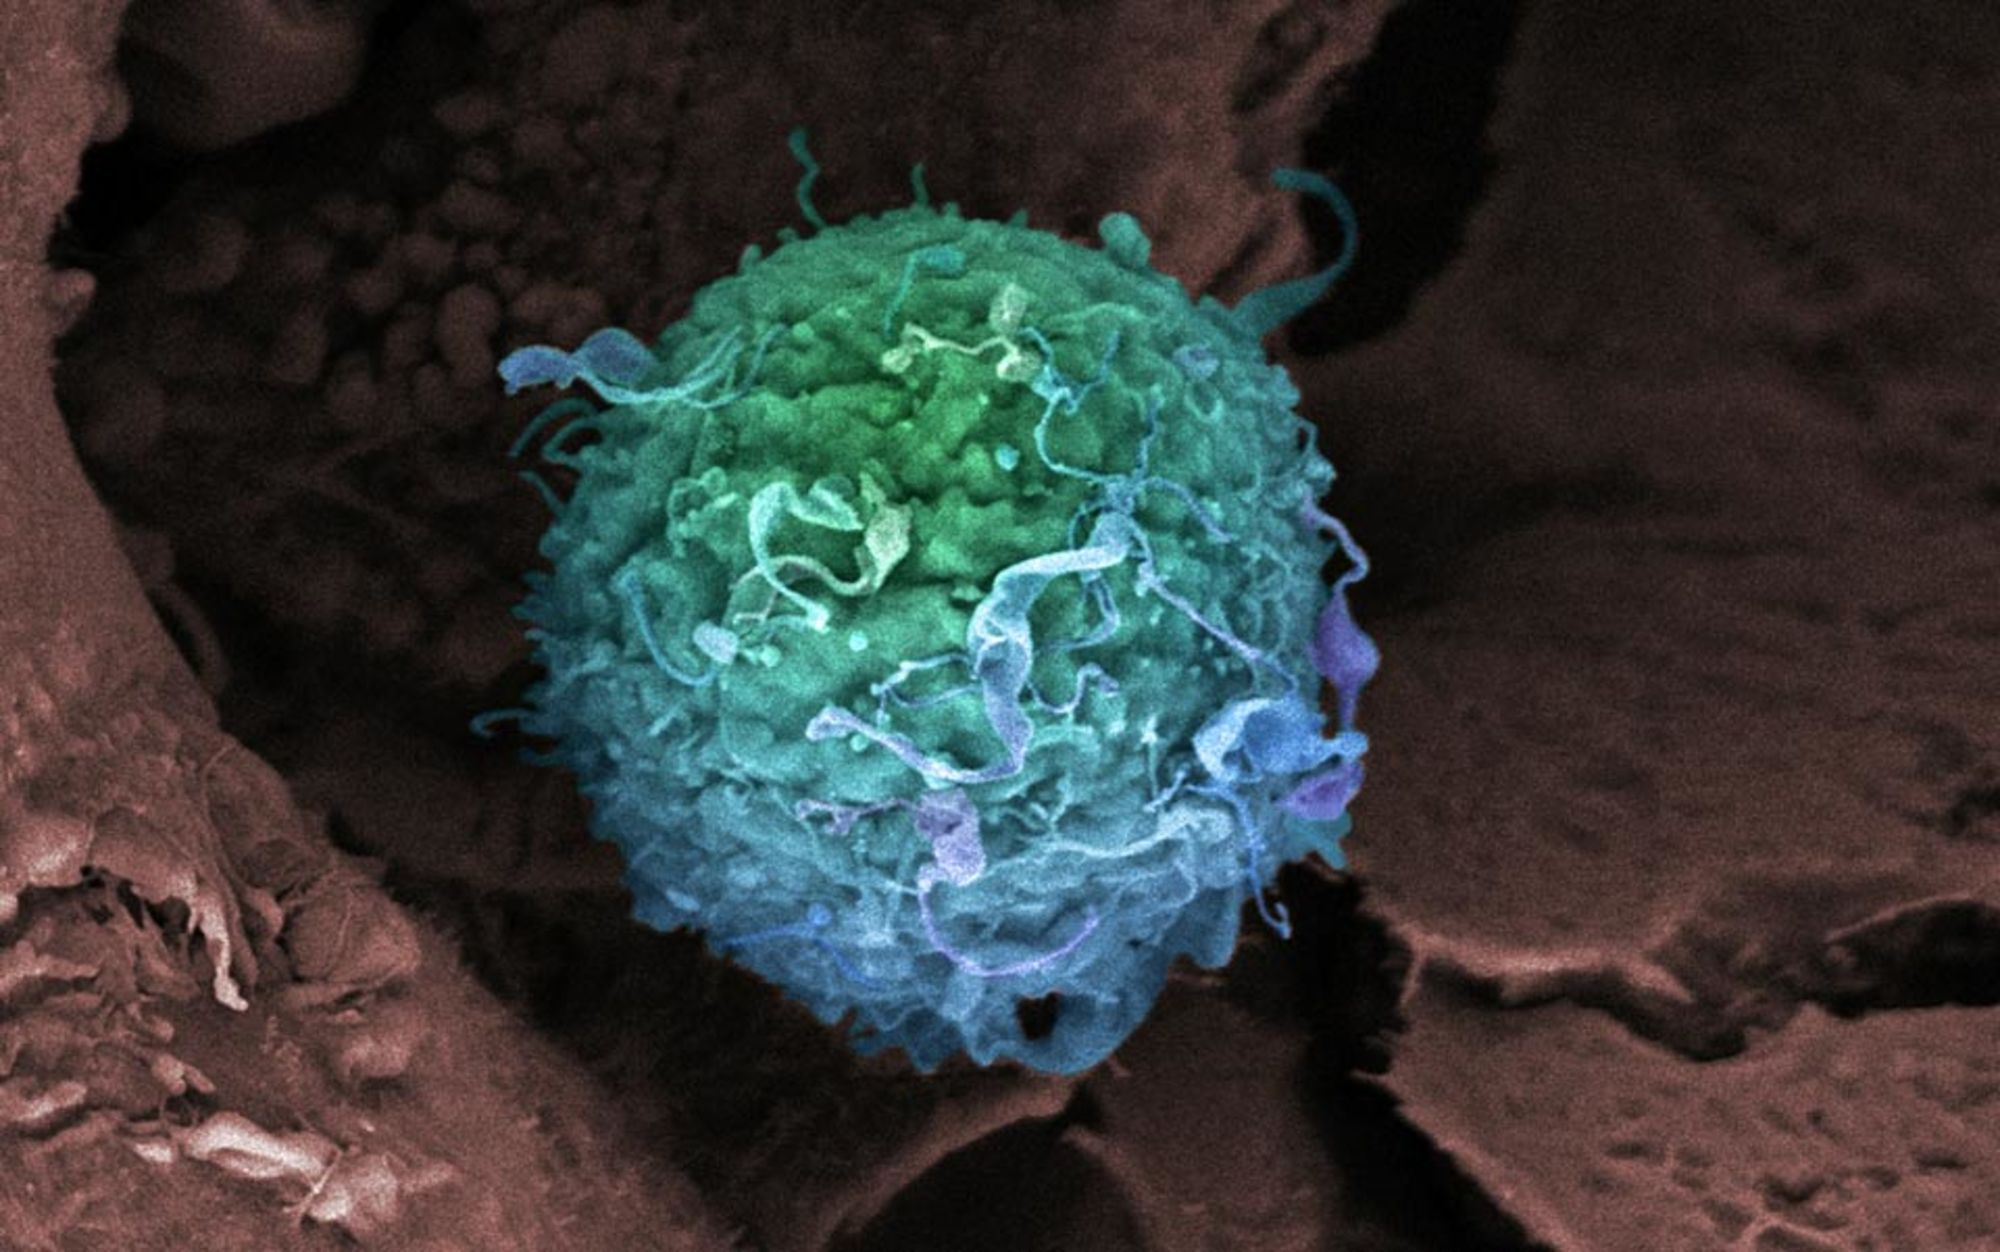 Can crowdfunding bring new cancer drugs to the market? – Alexander Masters | Aeon Essays